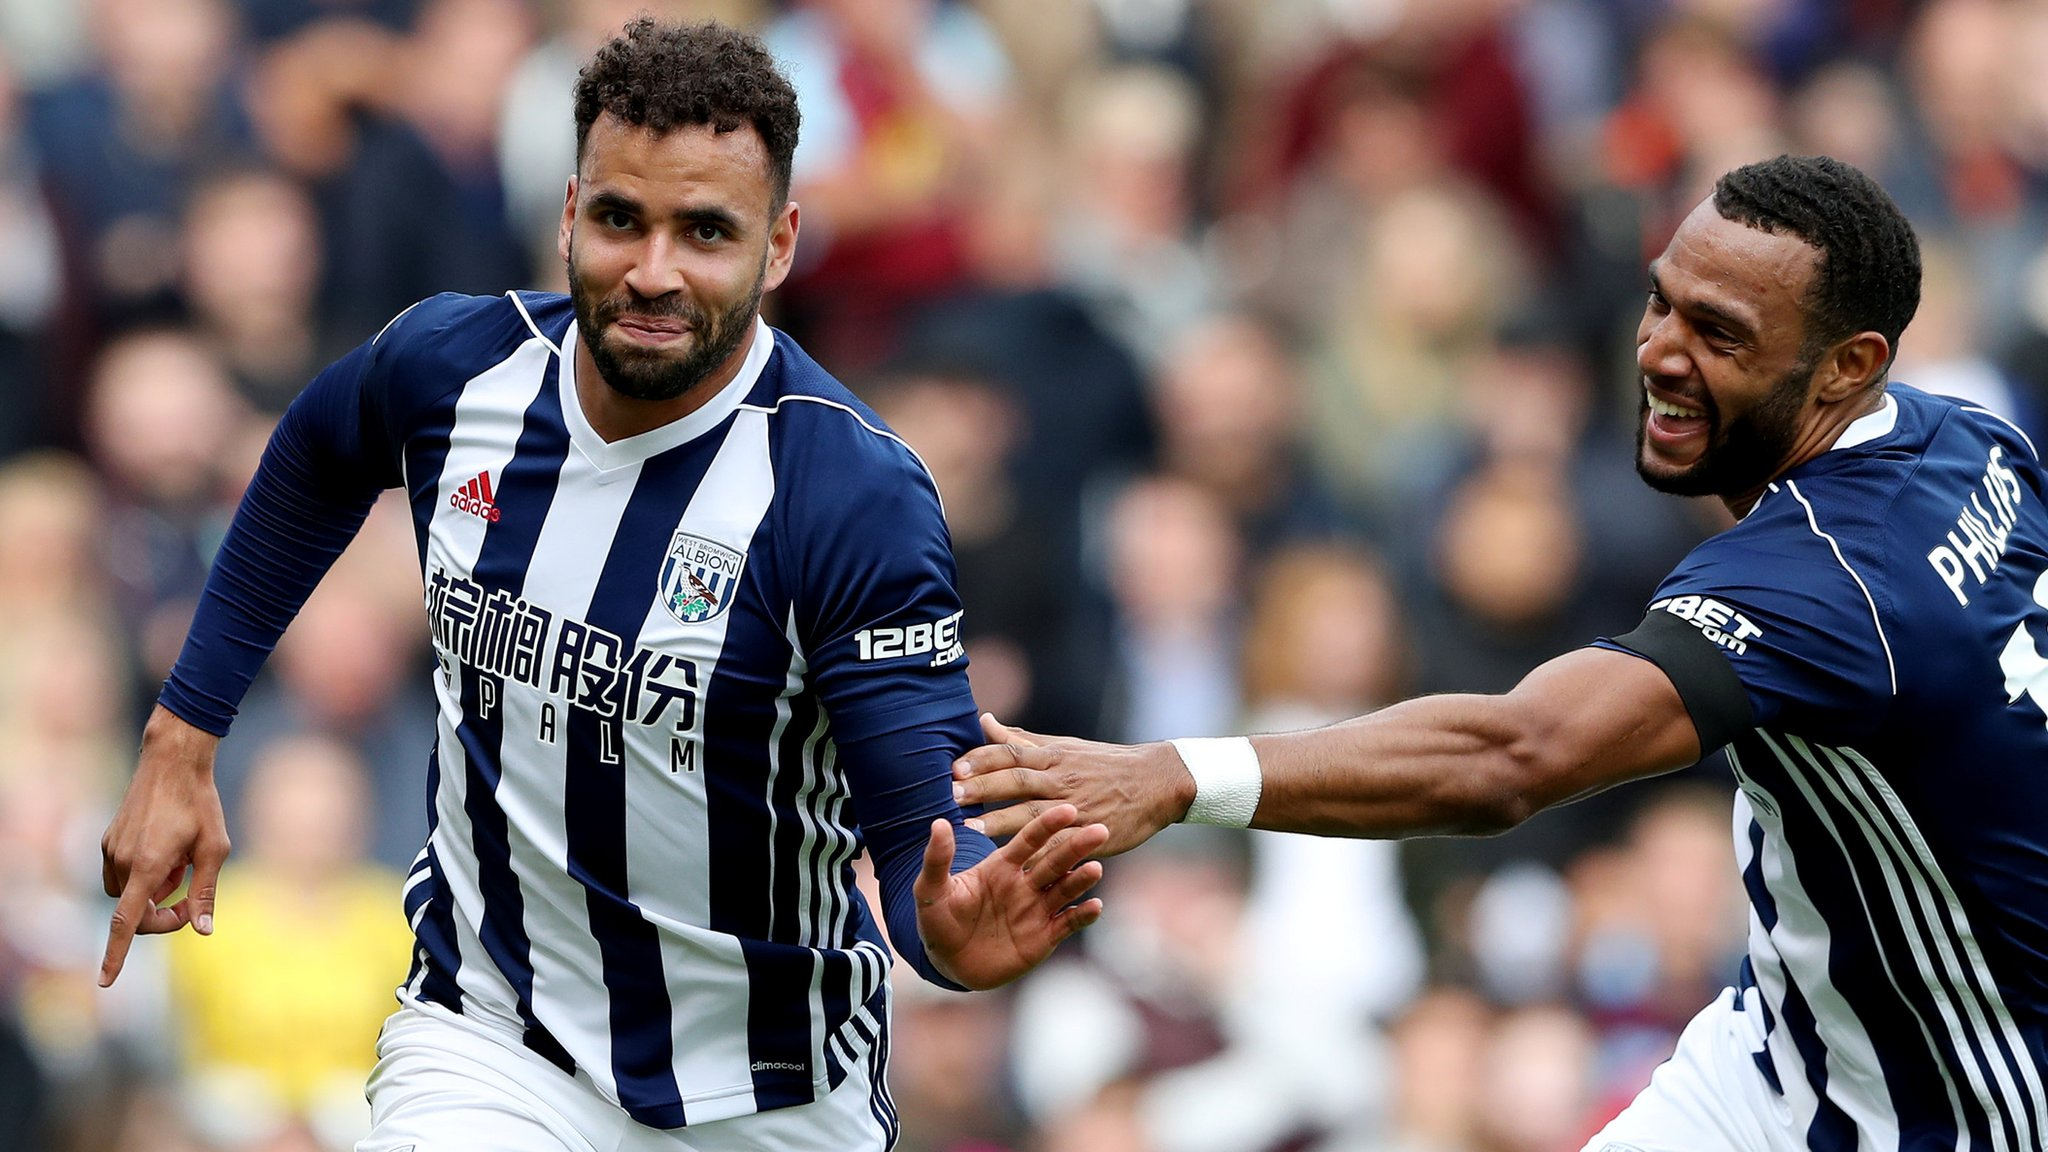 Robson Kanu scores & sees red as West Brom win at Burnley